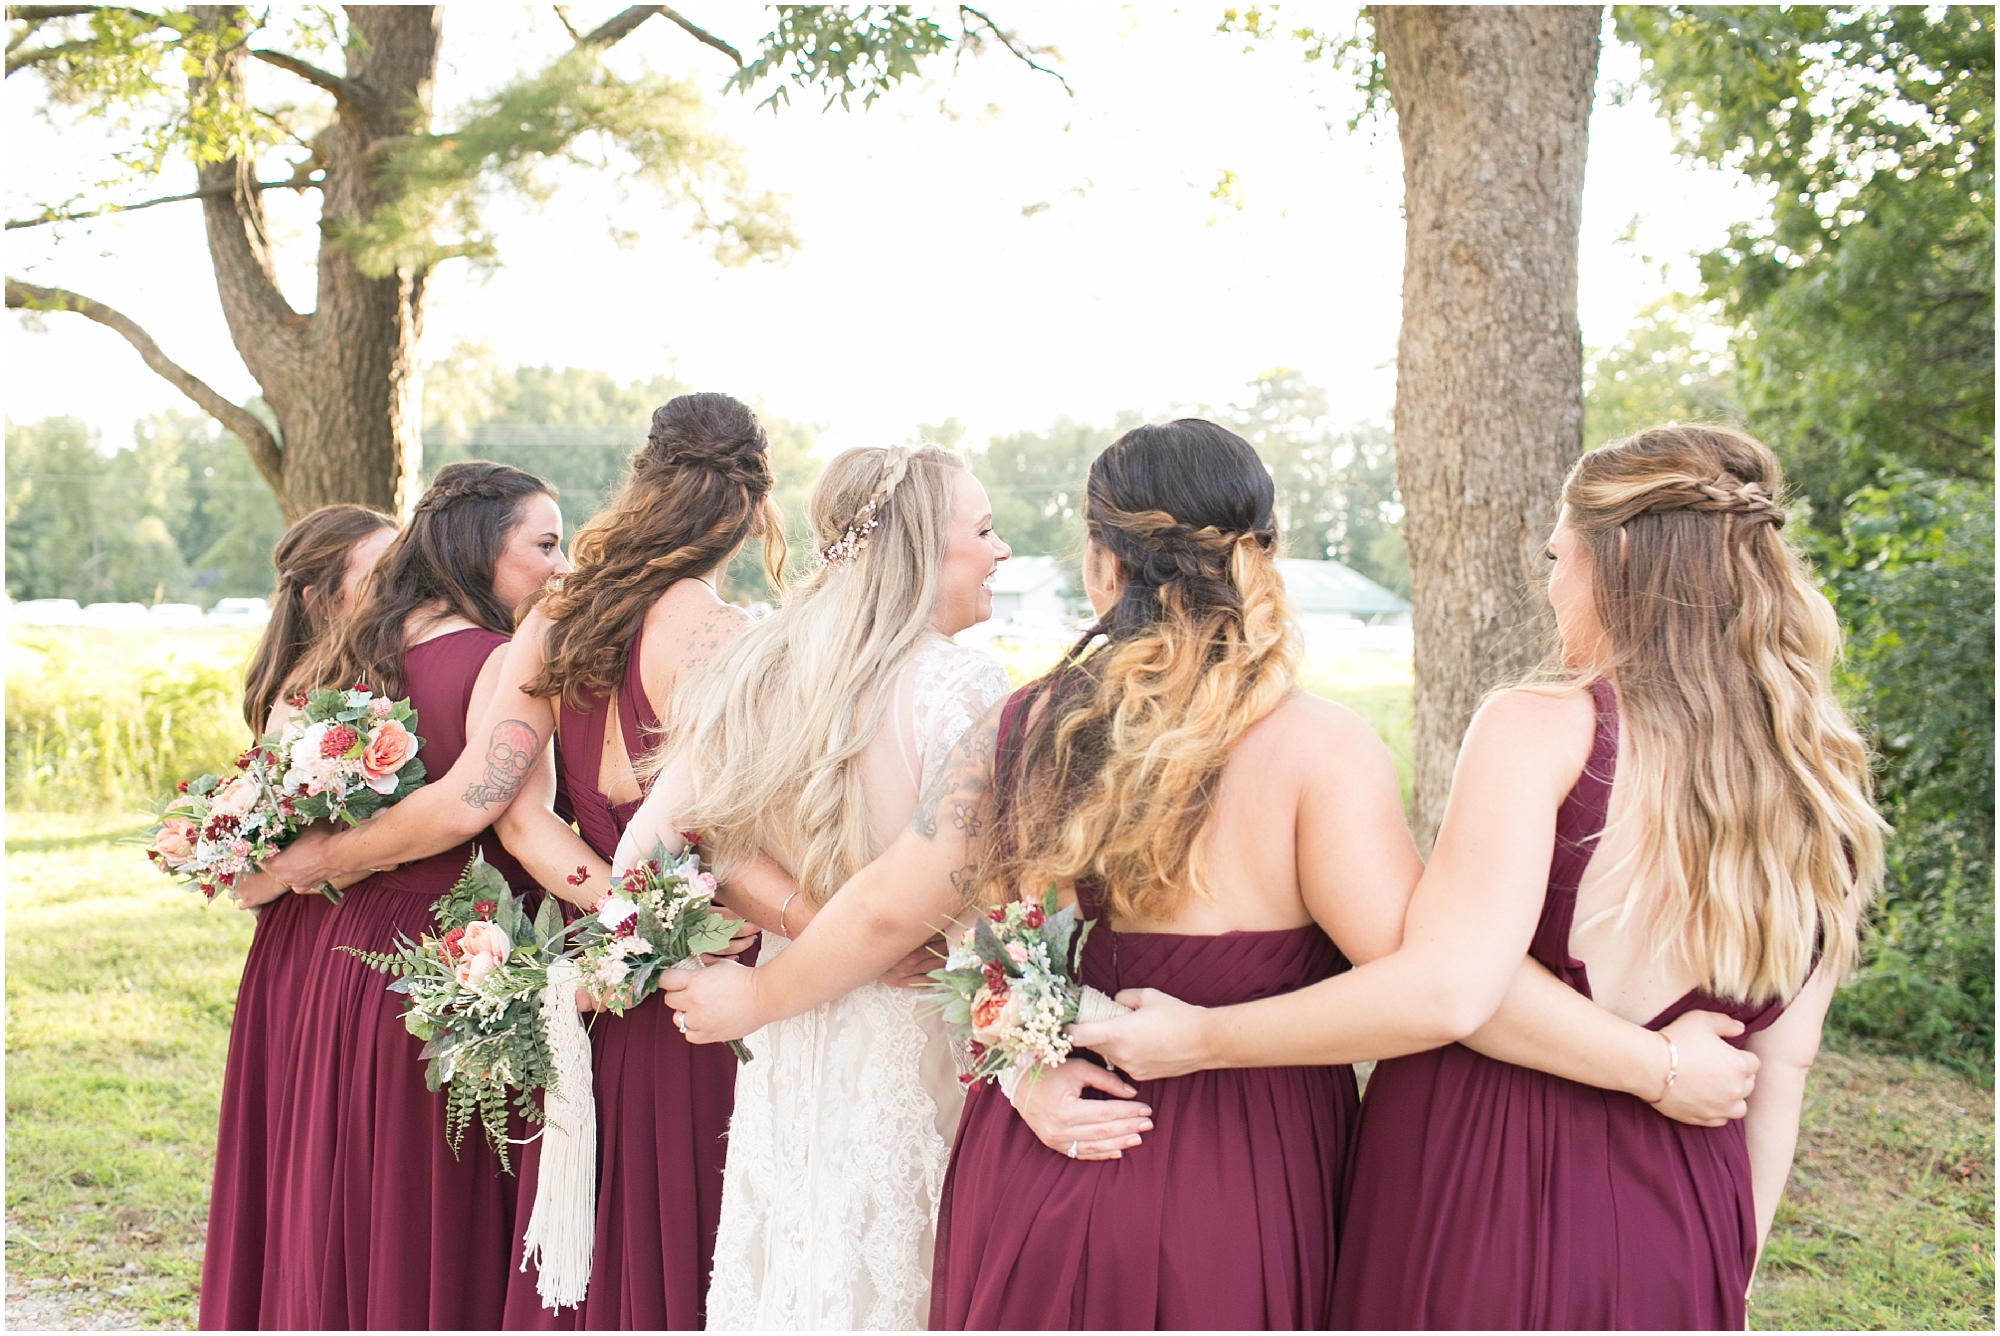 boho bride and bridesmaids on her wedding day photography boho wedding at The Tar Roof virginia beach wedding photography jessica ryan photography